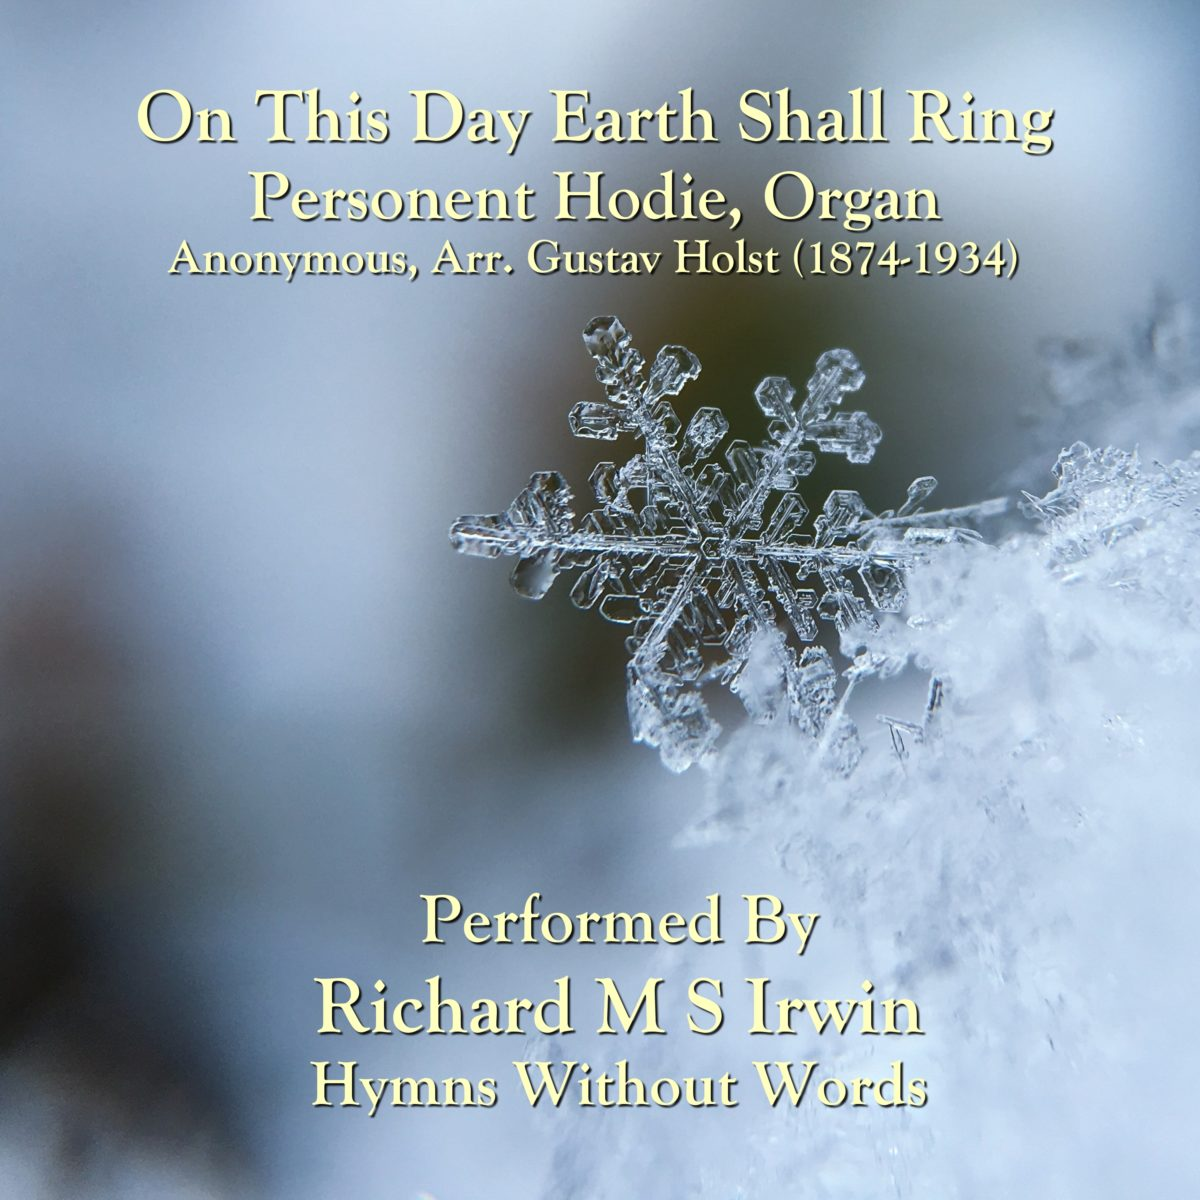 On This Day Earth Shall Ring (Personent Hodie, Organ, 4 Verses)